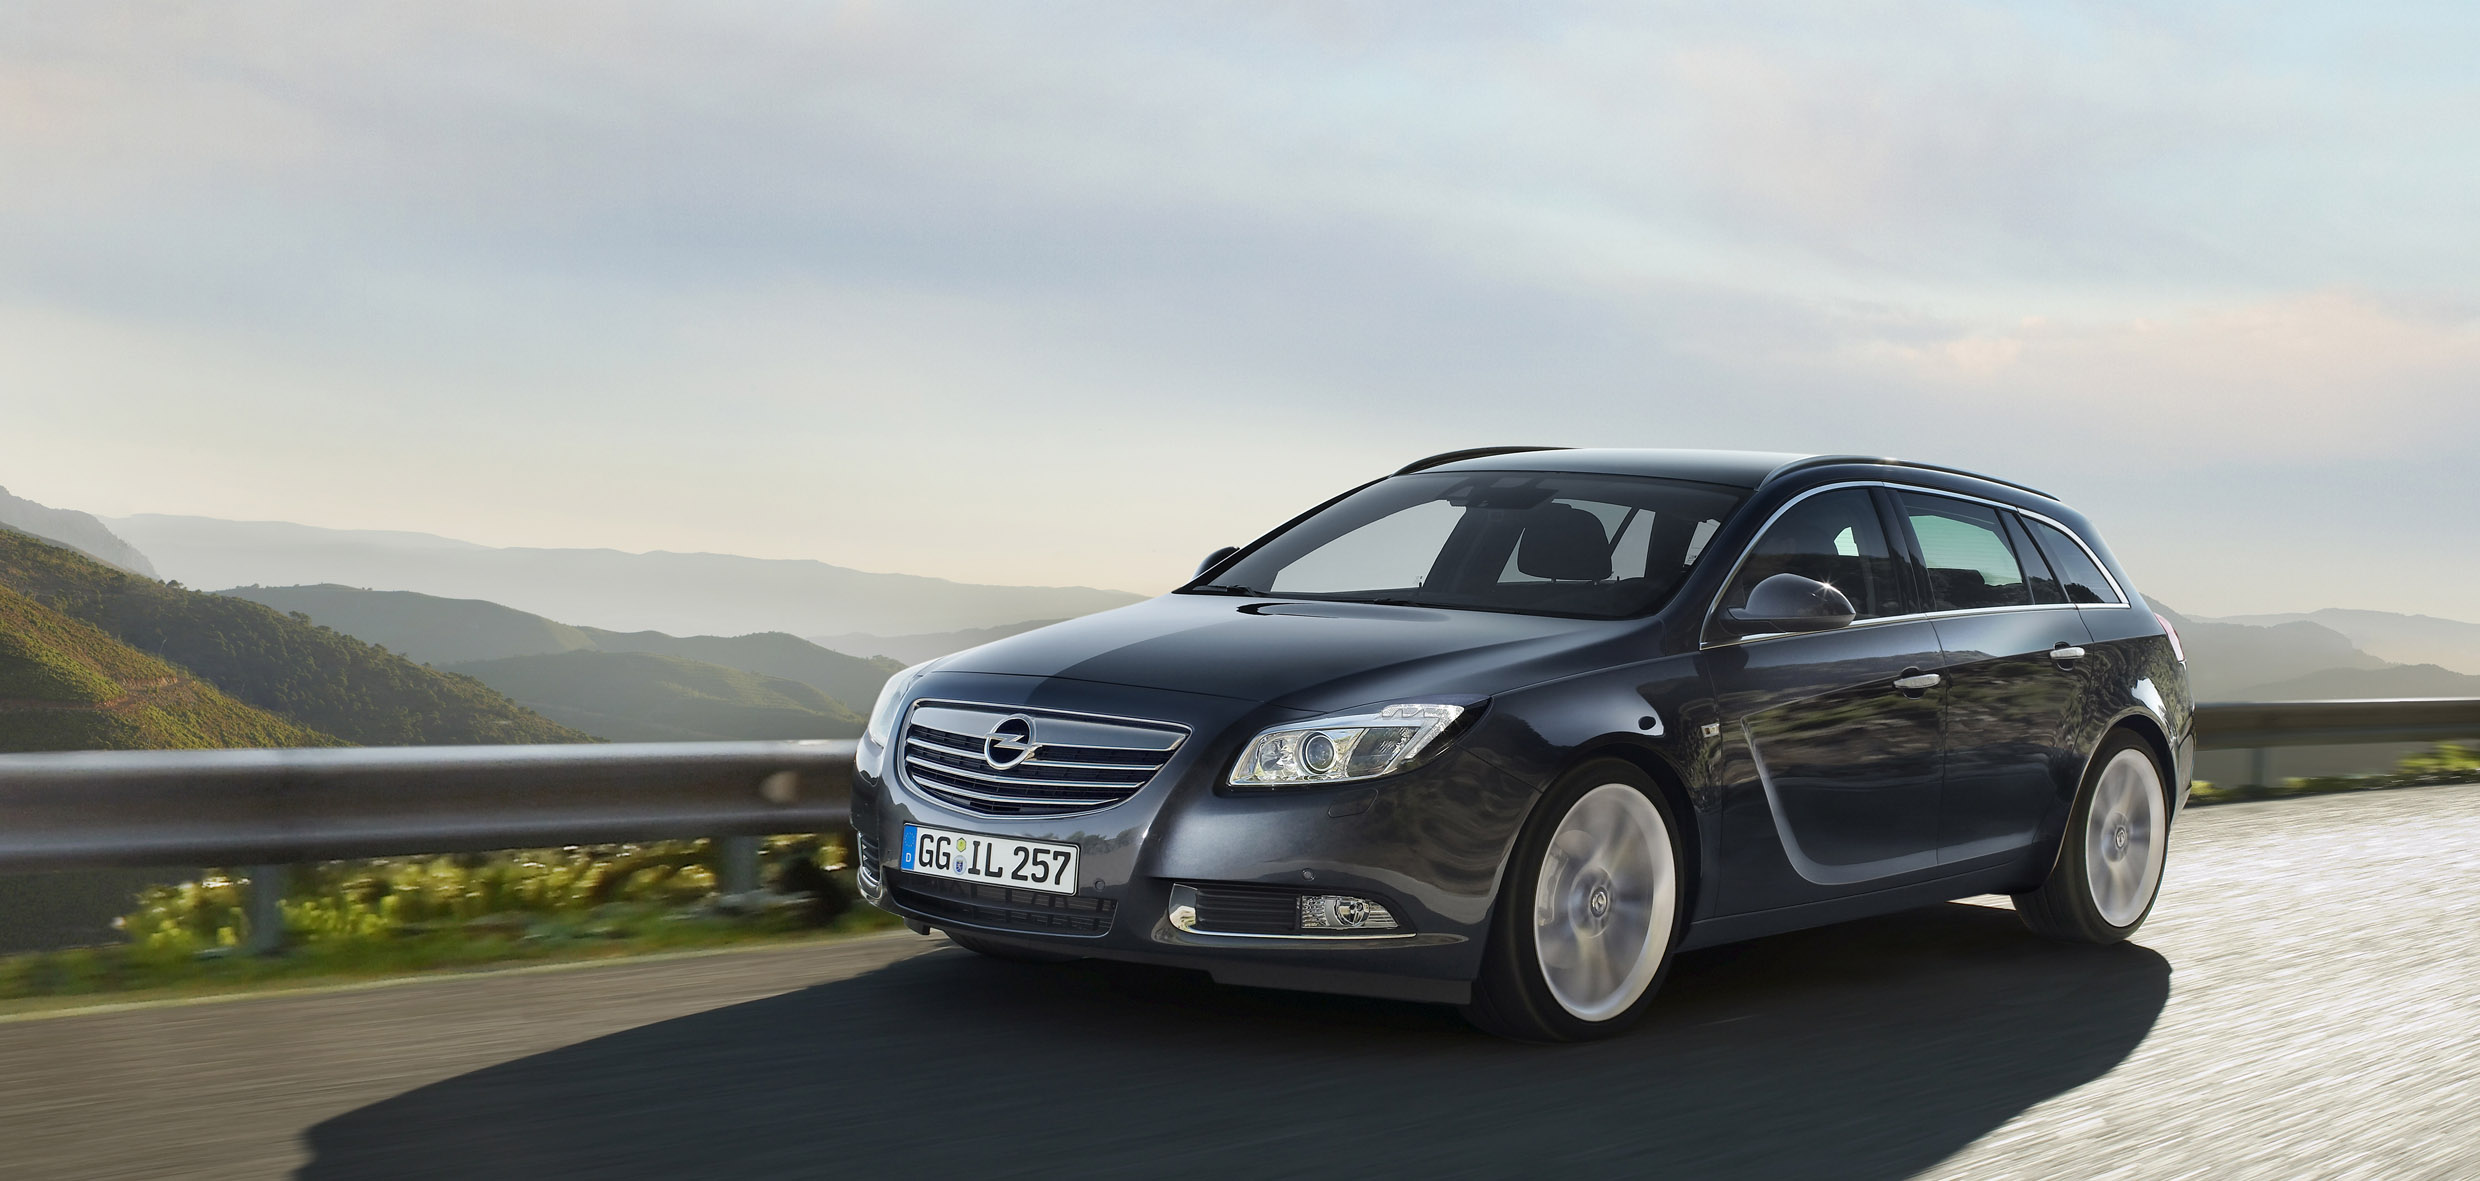 opel insignia sports tourer the new wagon in elegant. Black Bedroom Furniture Sets. Home Design Ideas